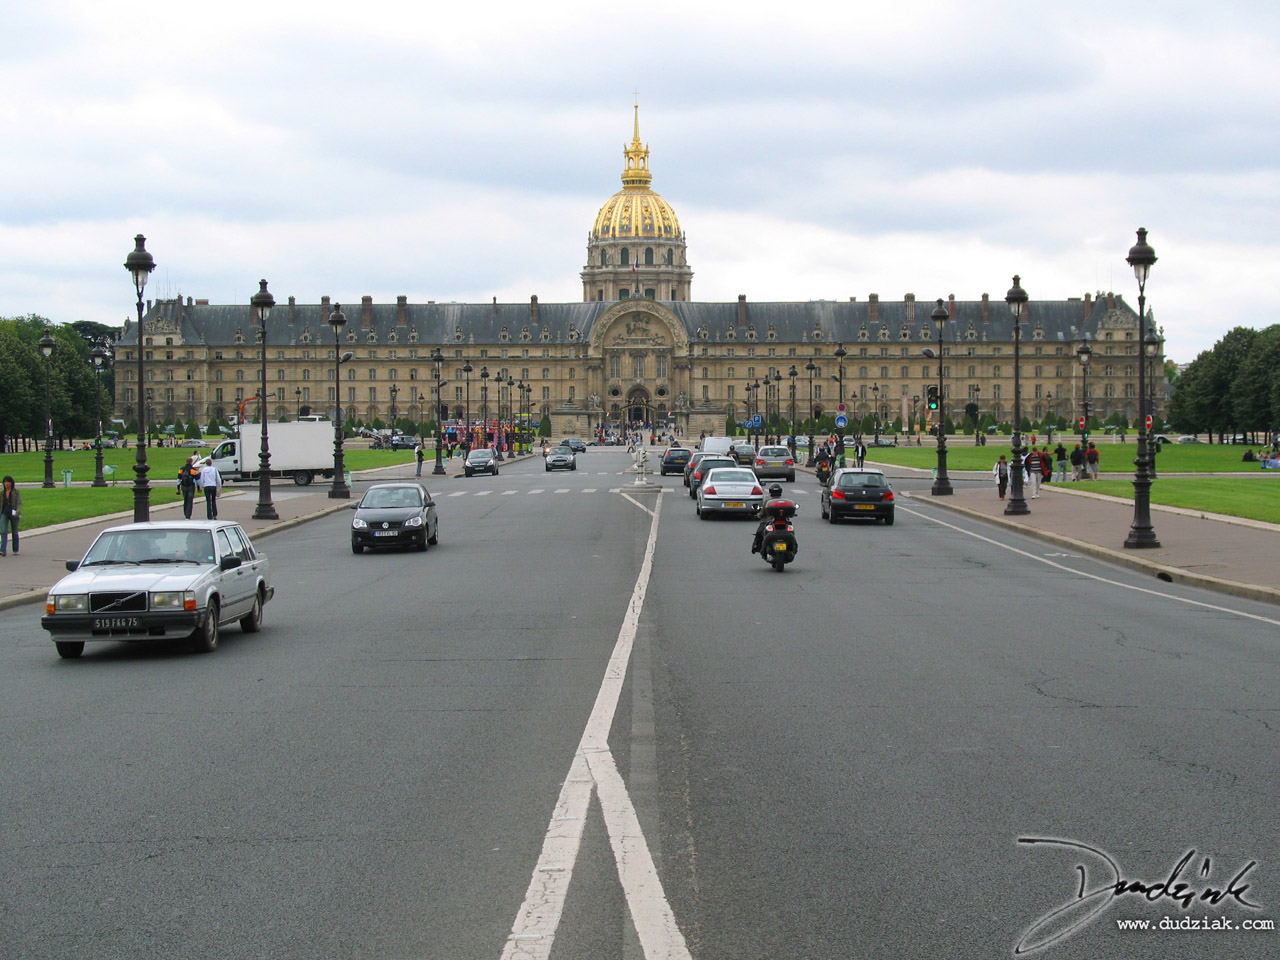 Les Invalides,  Military Museum,  Avenue de General Galland,  Paris France